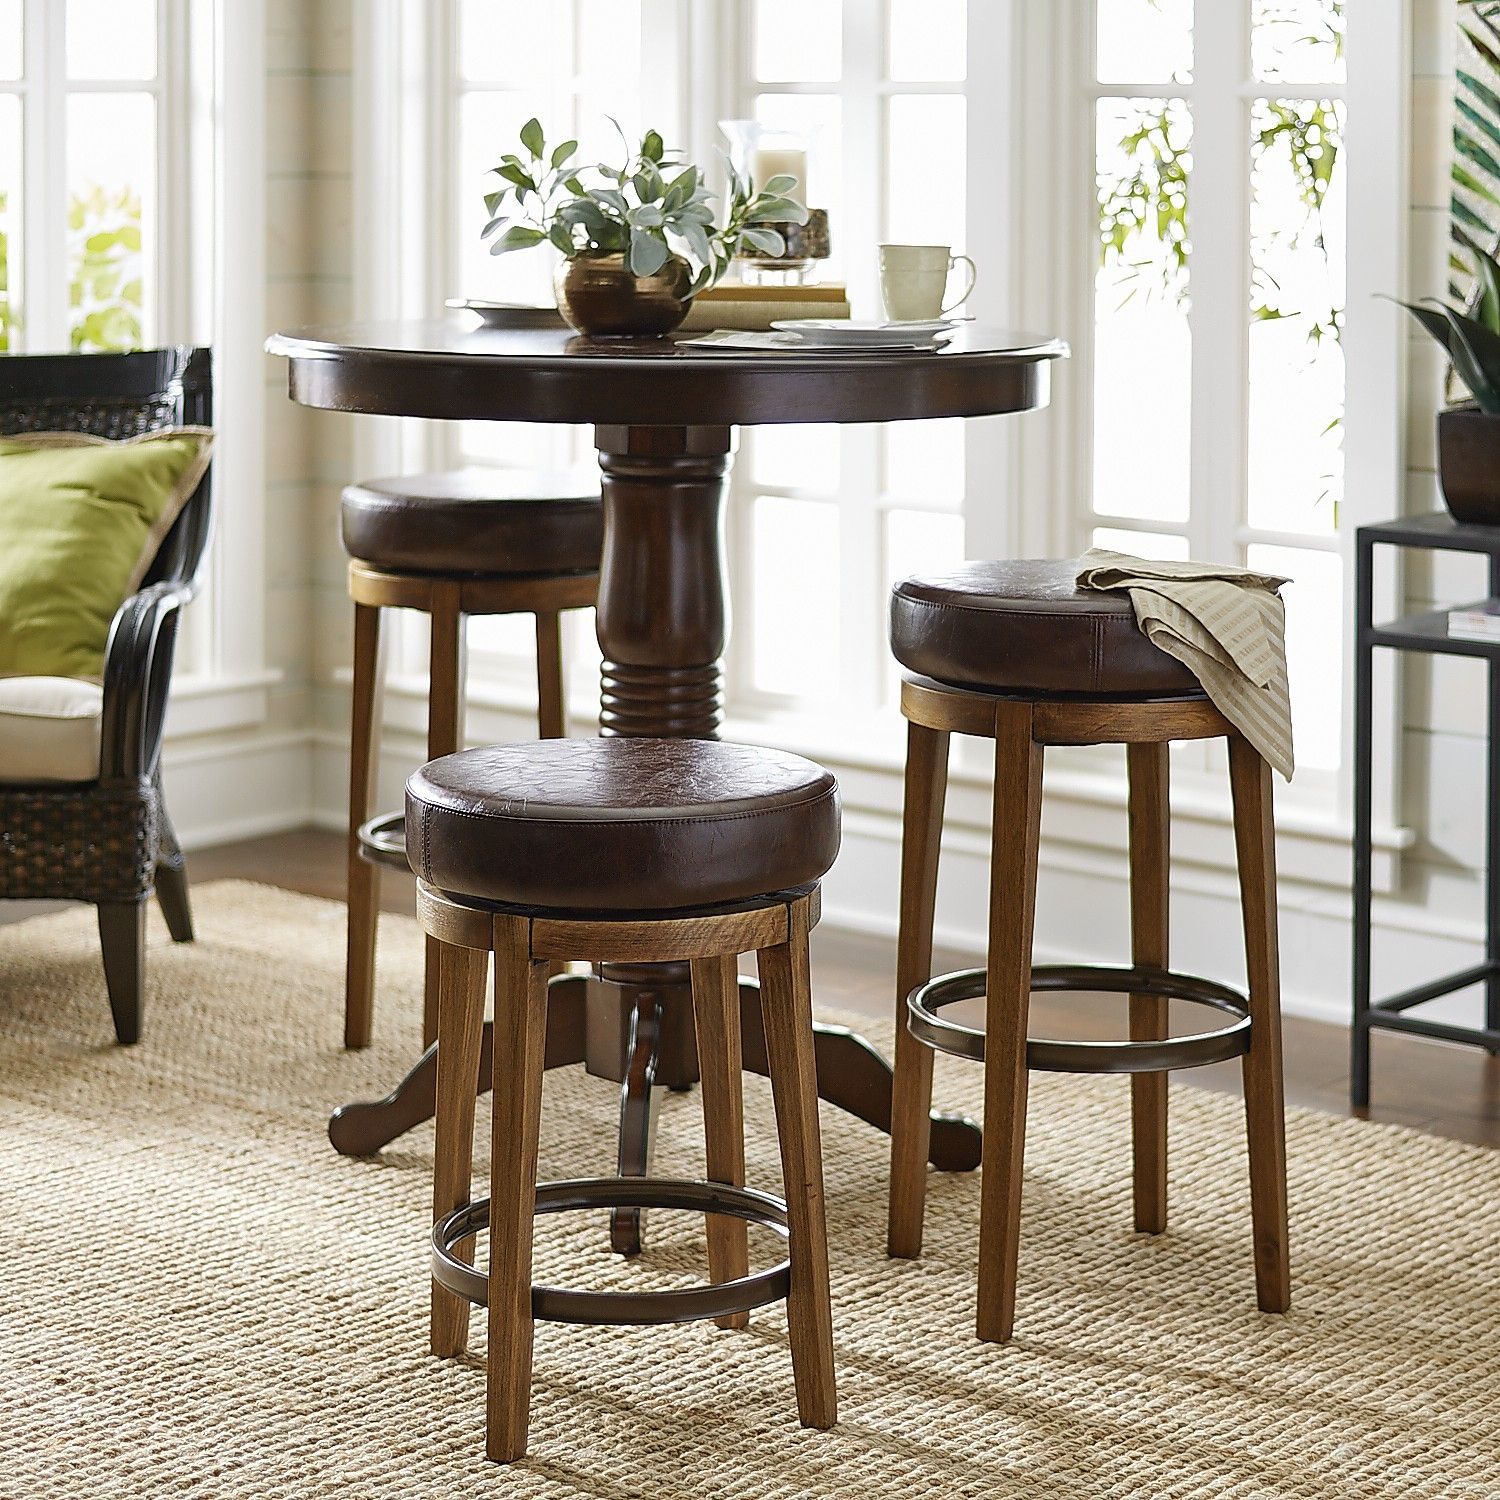 Stratmoor Pecan Swivel Counter & Bar Stool